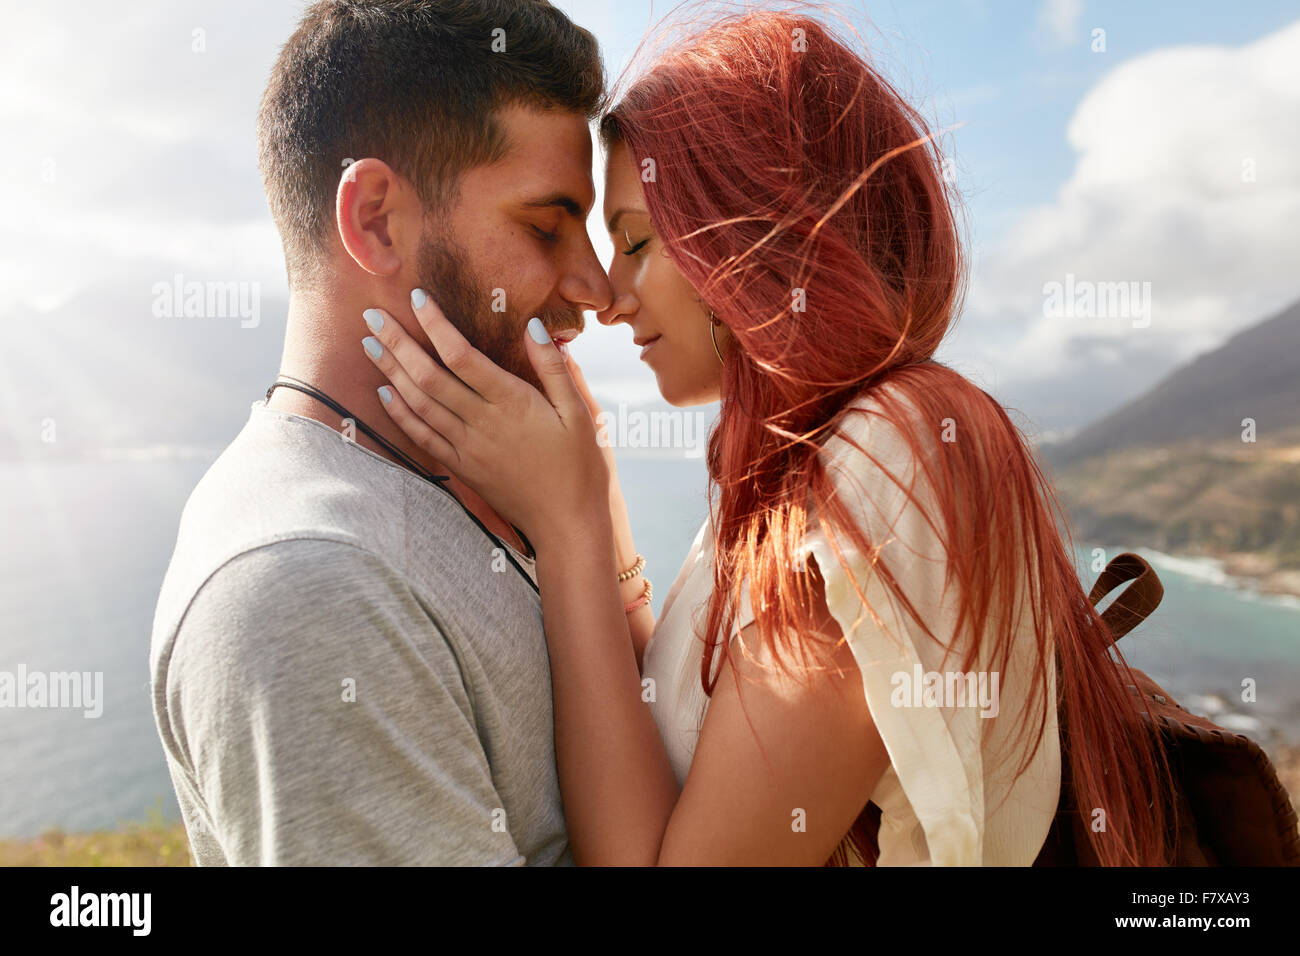 Portrait of affectionate young couple about to kiss. Romantic young man and woman sharing a lovely moment on their - Stock Image